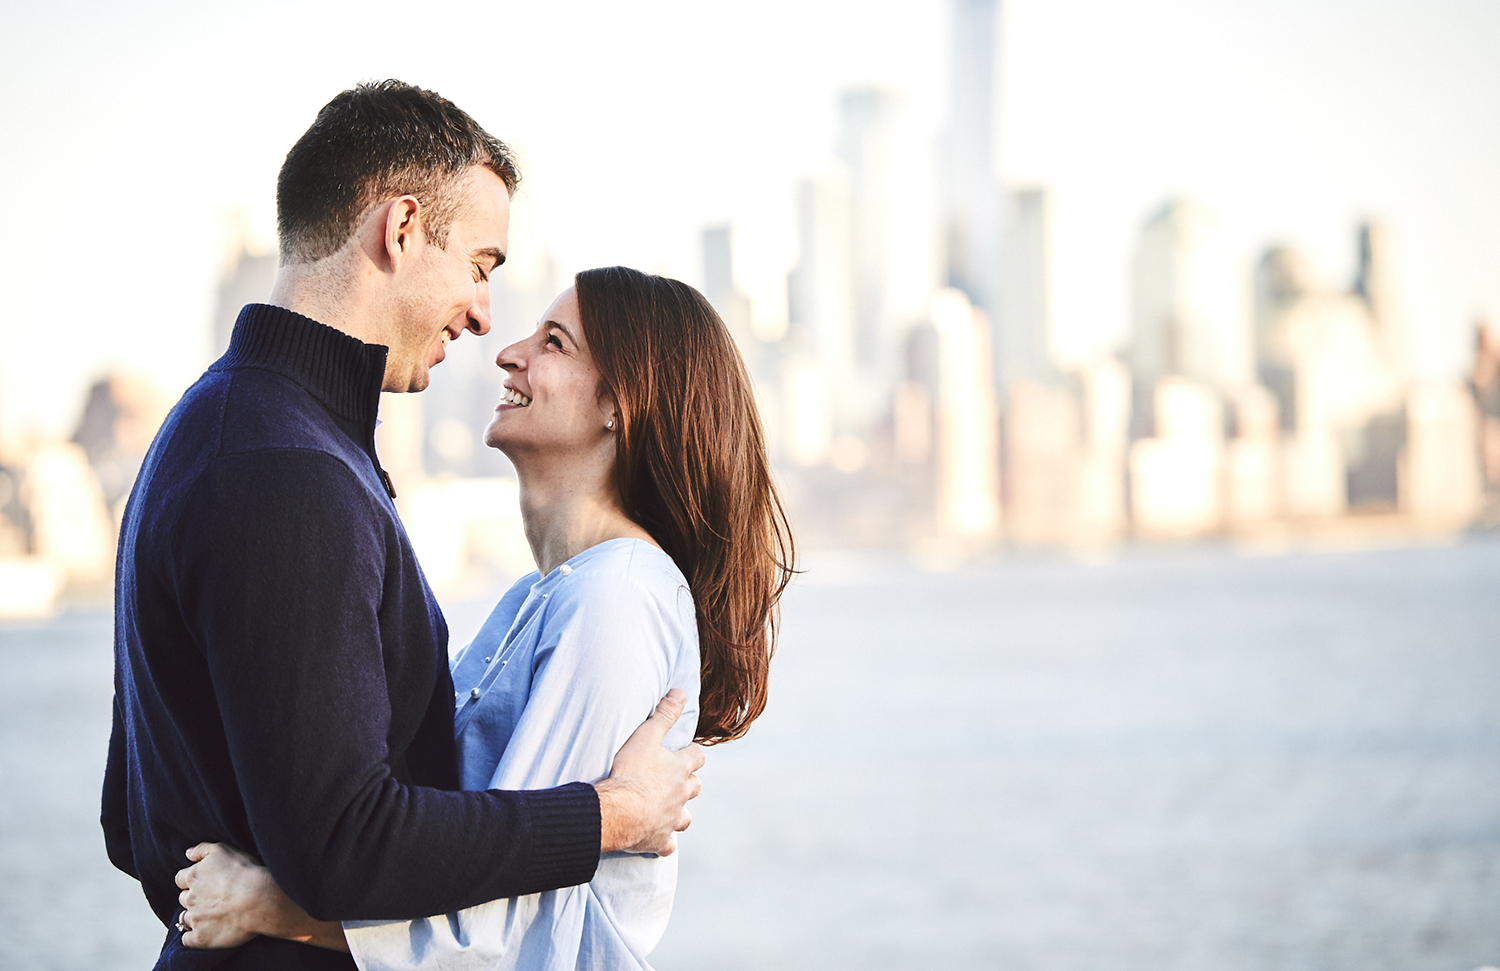 180422_StevensInstitureofTechnologyEngagementPhotography_HobokenEngagement Photography_By_BriJohnsonWeddings_0031.jpg